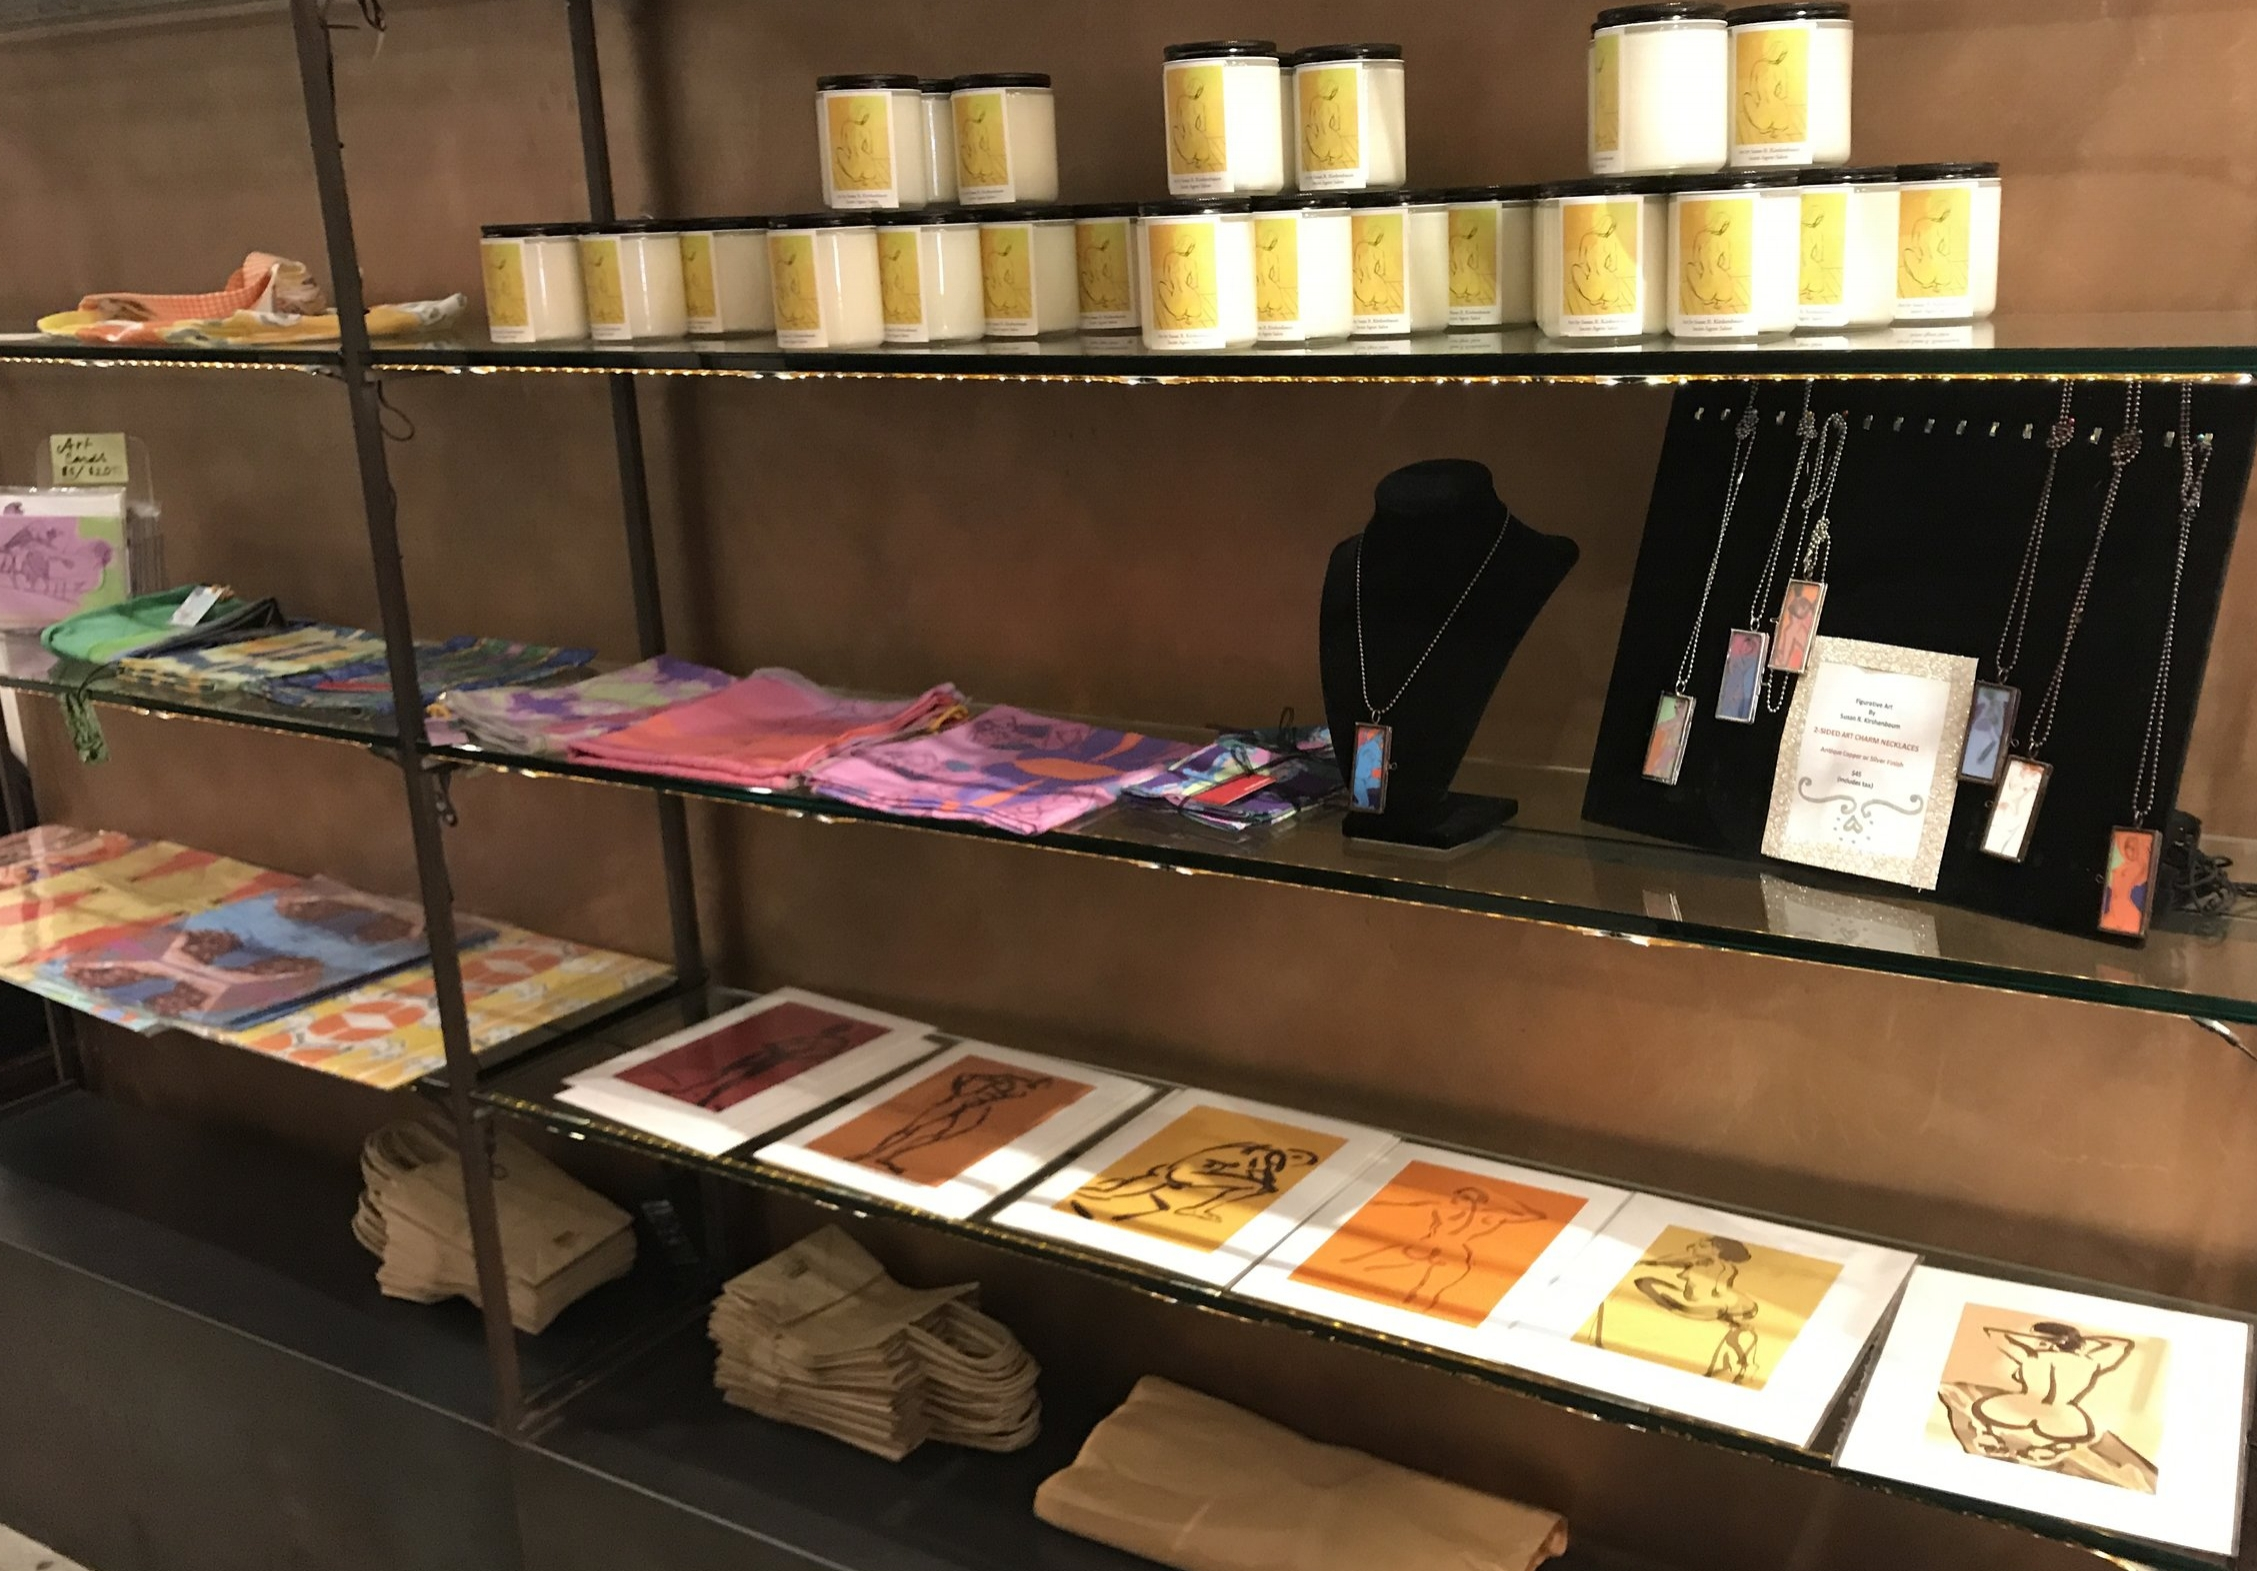 I took over the display shelves for the evening with an array of my art merchandise. My art greeting cards are staying at the shop so you can browse when you stop by.